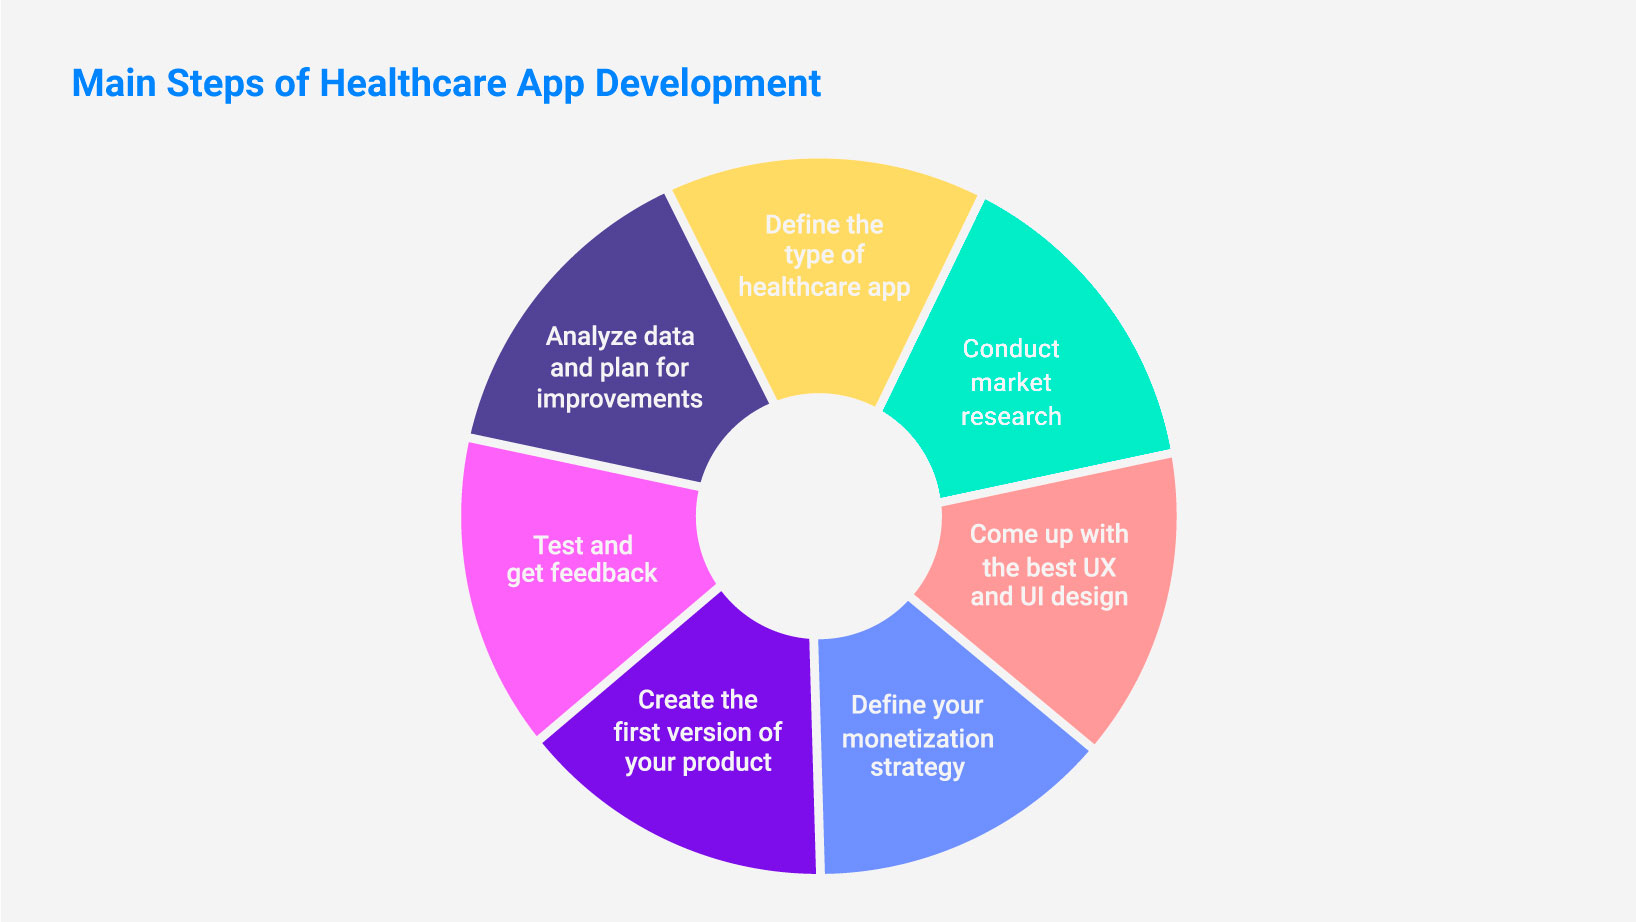 Main Steps of Healthcare App Development